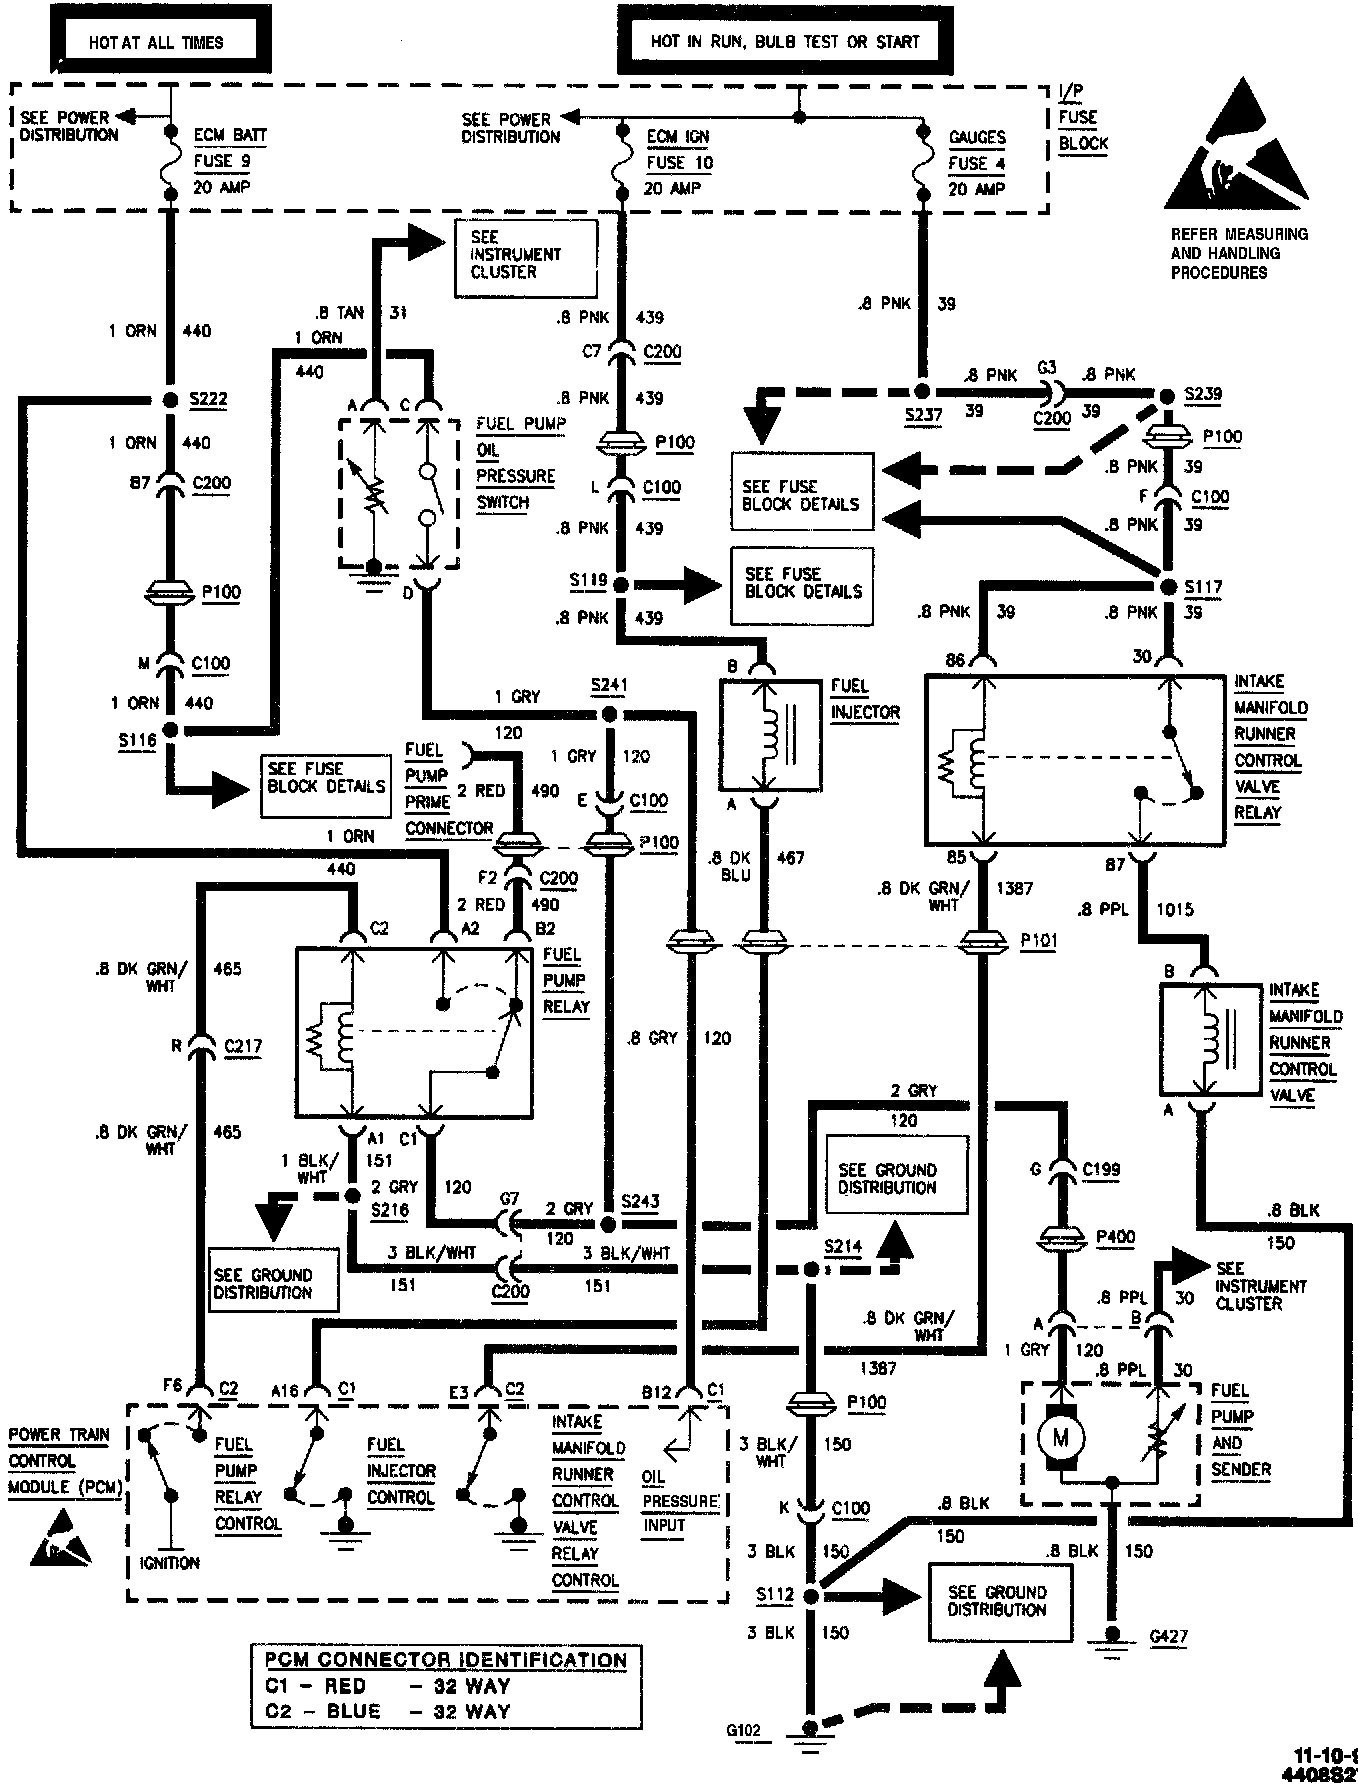 1996 Chevy S10 Wiring Diagram Ignition Switch Wiring Diagram 2001 Blazer Valid 1996 Chevy Blazer Of 1996 Chevy S10 Wiring Diagram